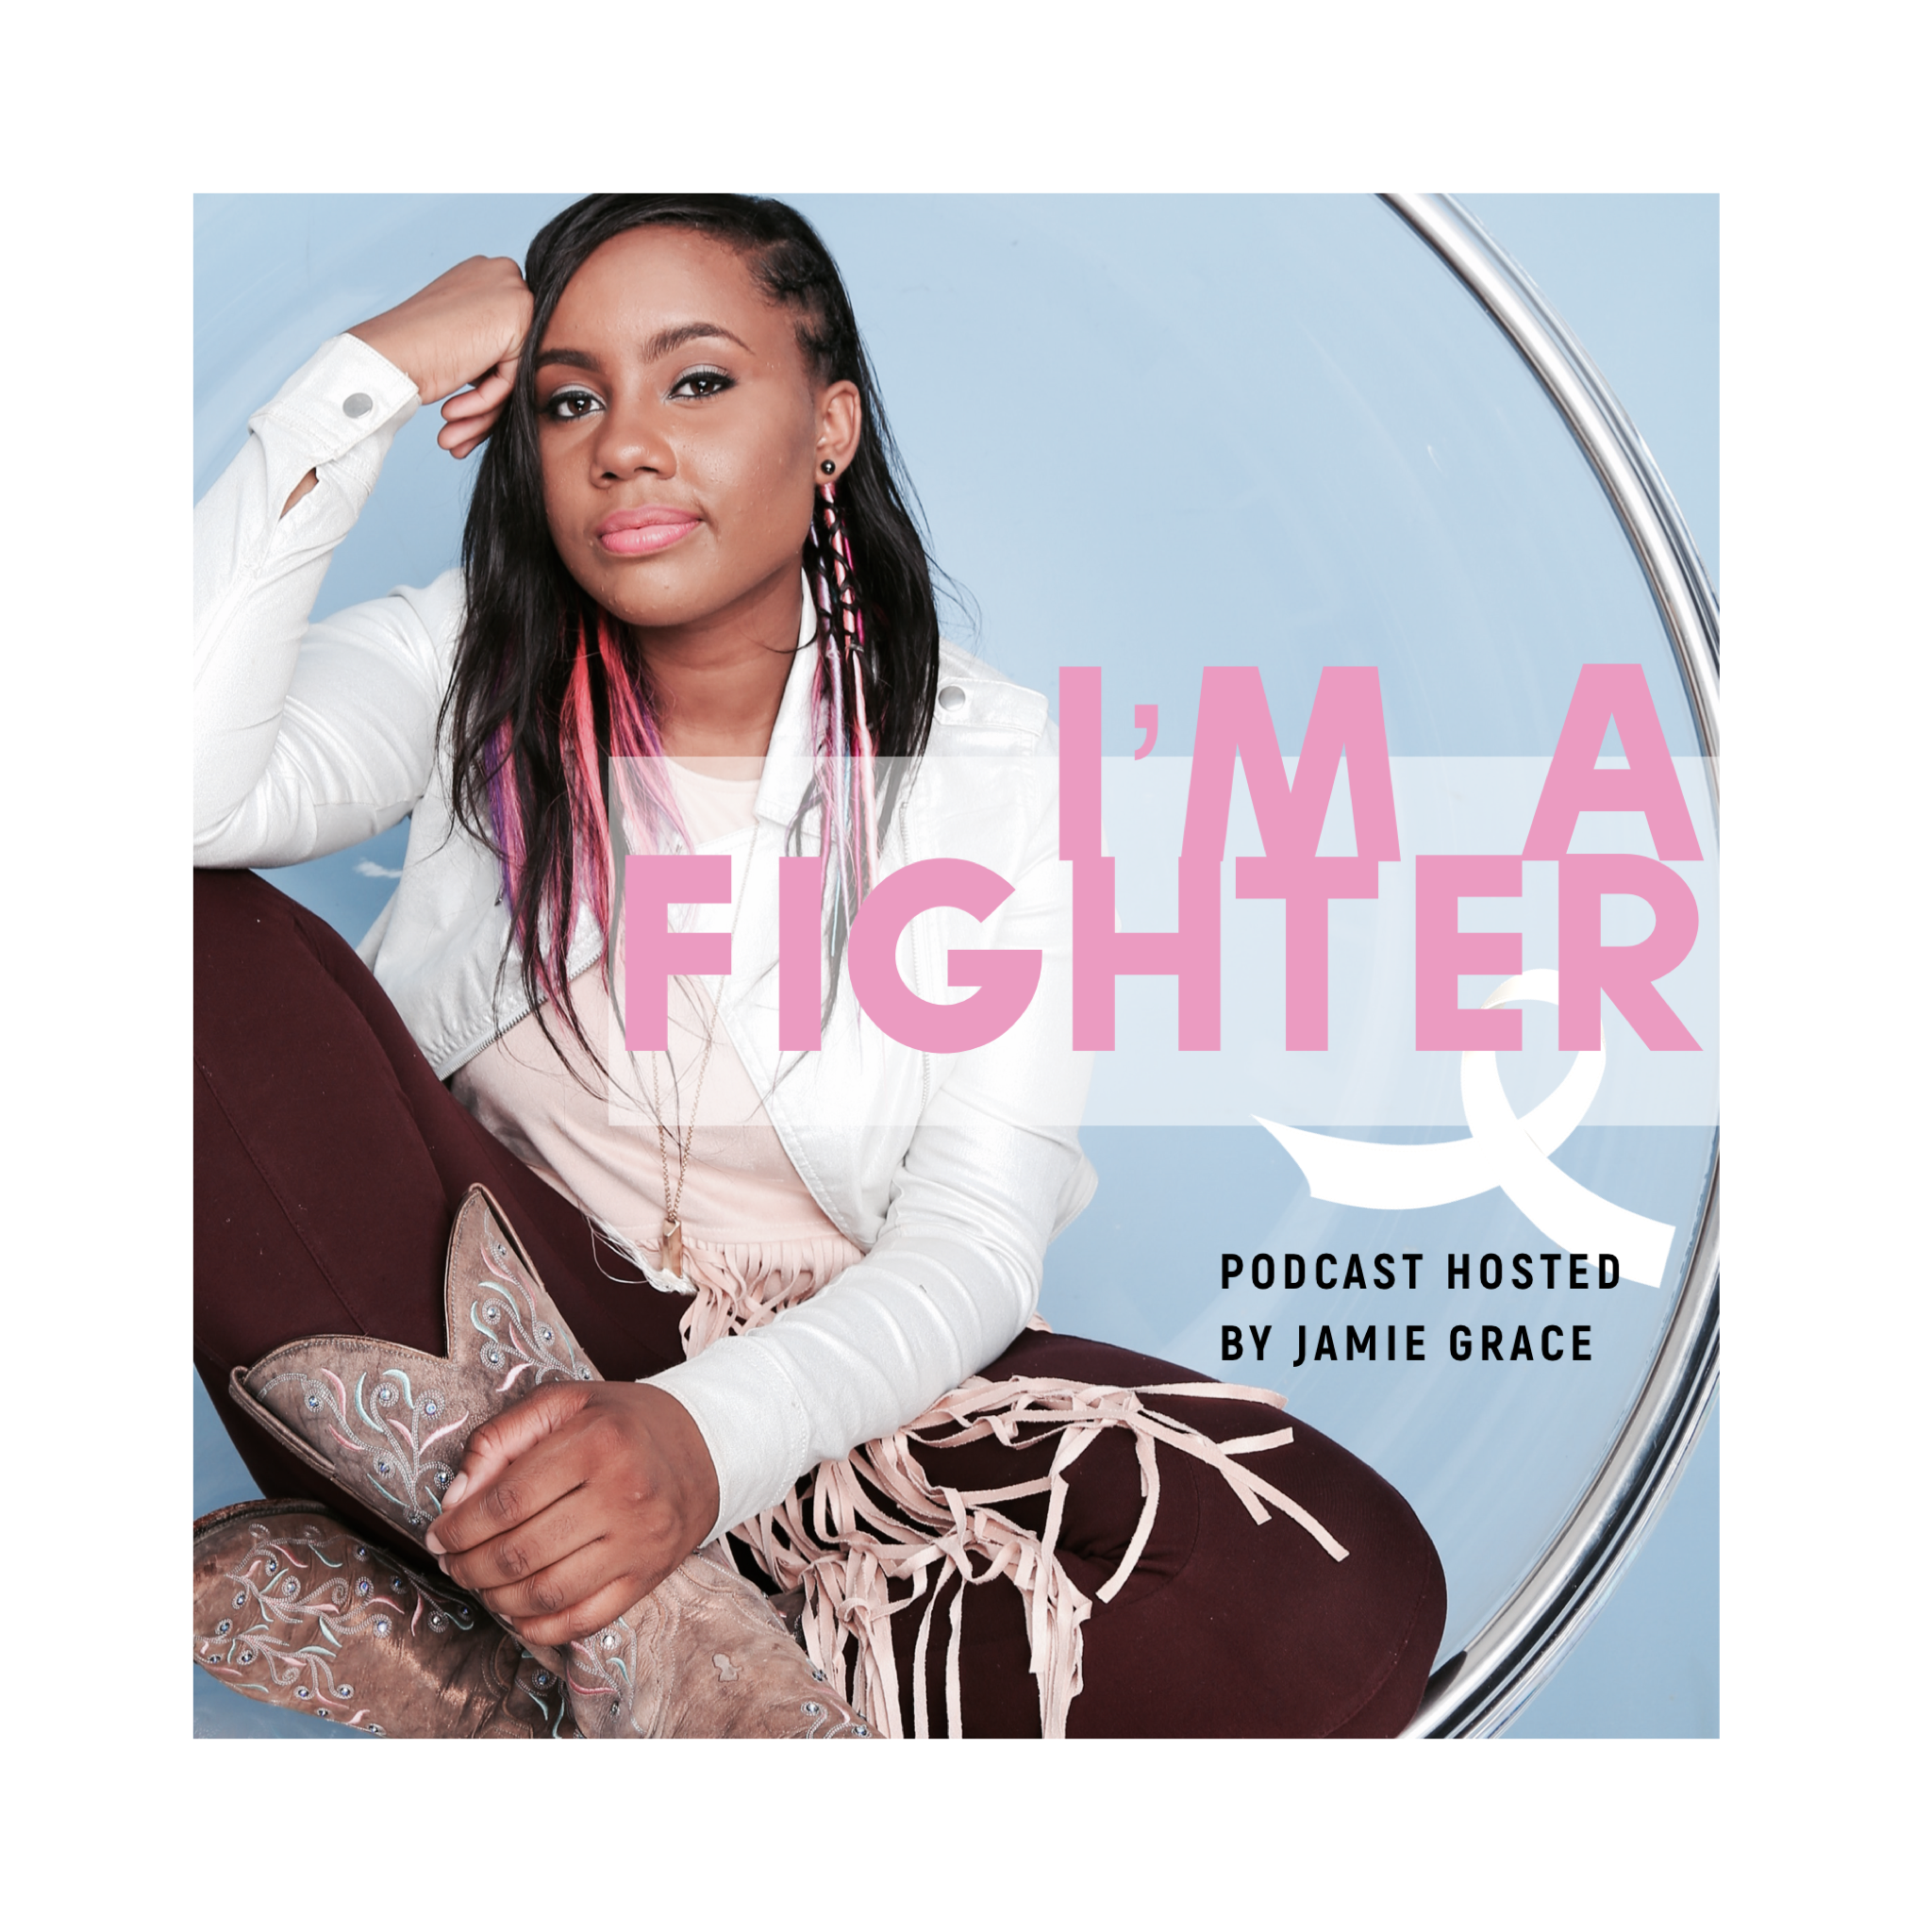 Suggested:13+/Families    I'm A Fighter: Jamie Grace interviews everyday fighters! Meet a 17 year old fighting cancer, a mom fighting diabetes, a dad raising awareness for his son who has Autism. If you're looking for encouraging stories, I'm A Fighter is the podcast to subscribe to!